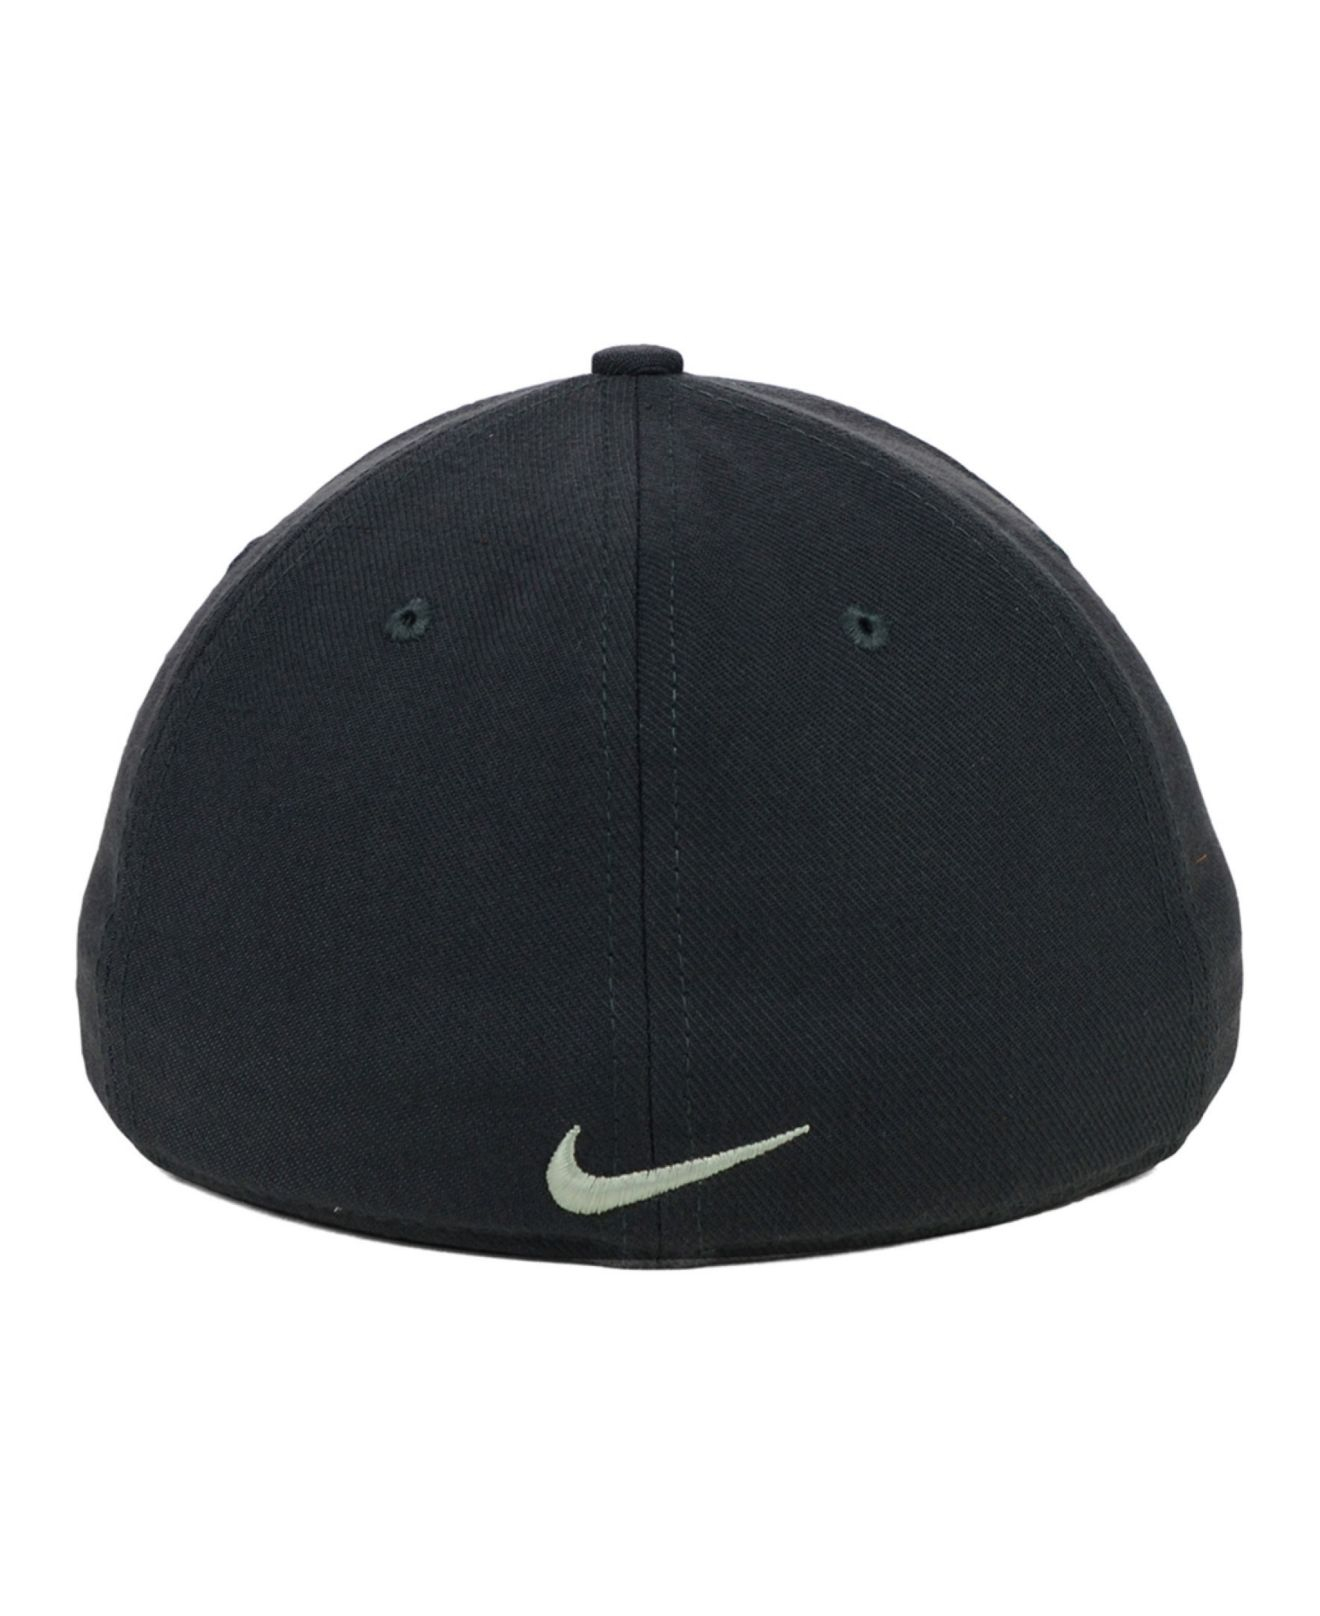 Lyst - Nike Arkansas Razorbacks True Platinum Swooshflex Cap in Gray ... 628f511d19ed